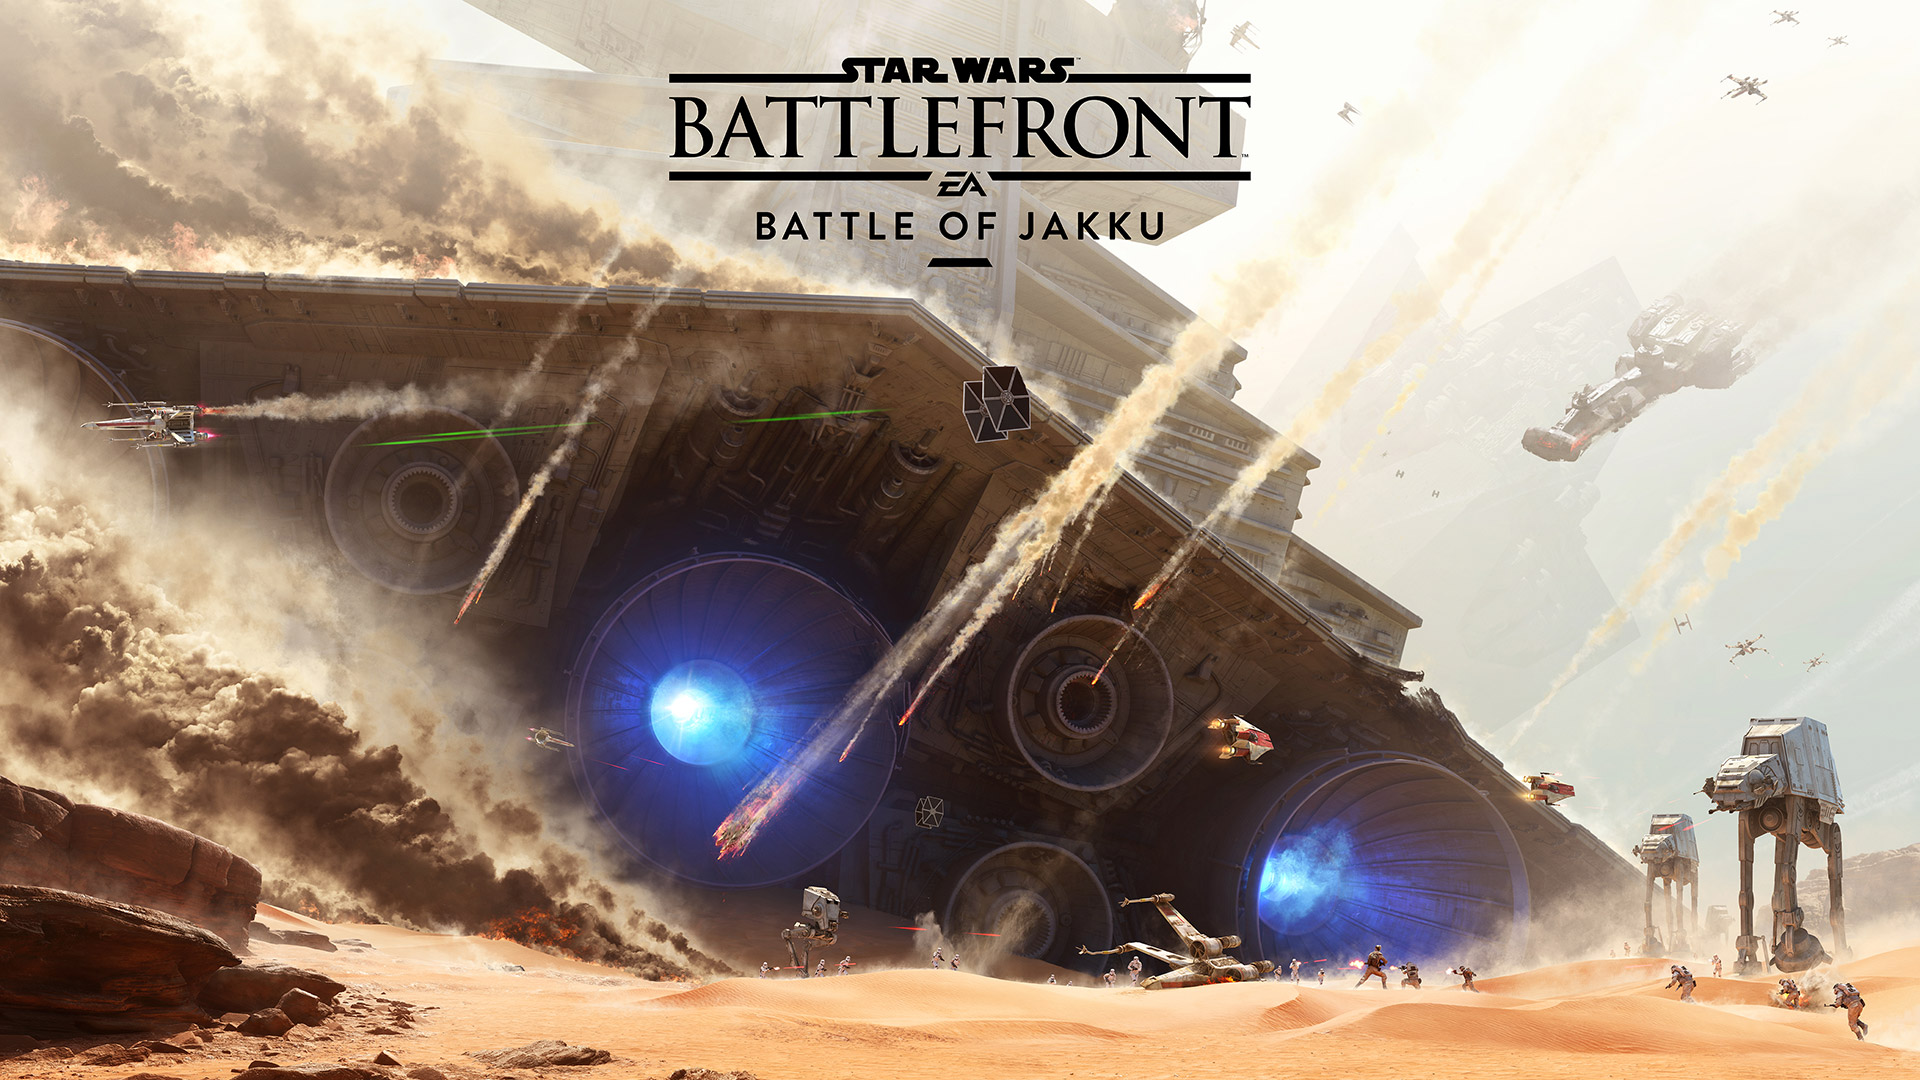 Star Wars Battlefront : les nouvelles cartes du DLC Bataille de Jakku FeaturedImage.img